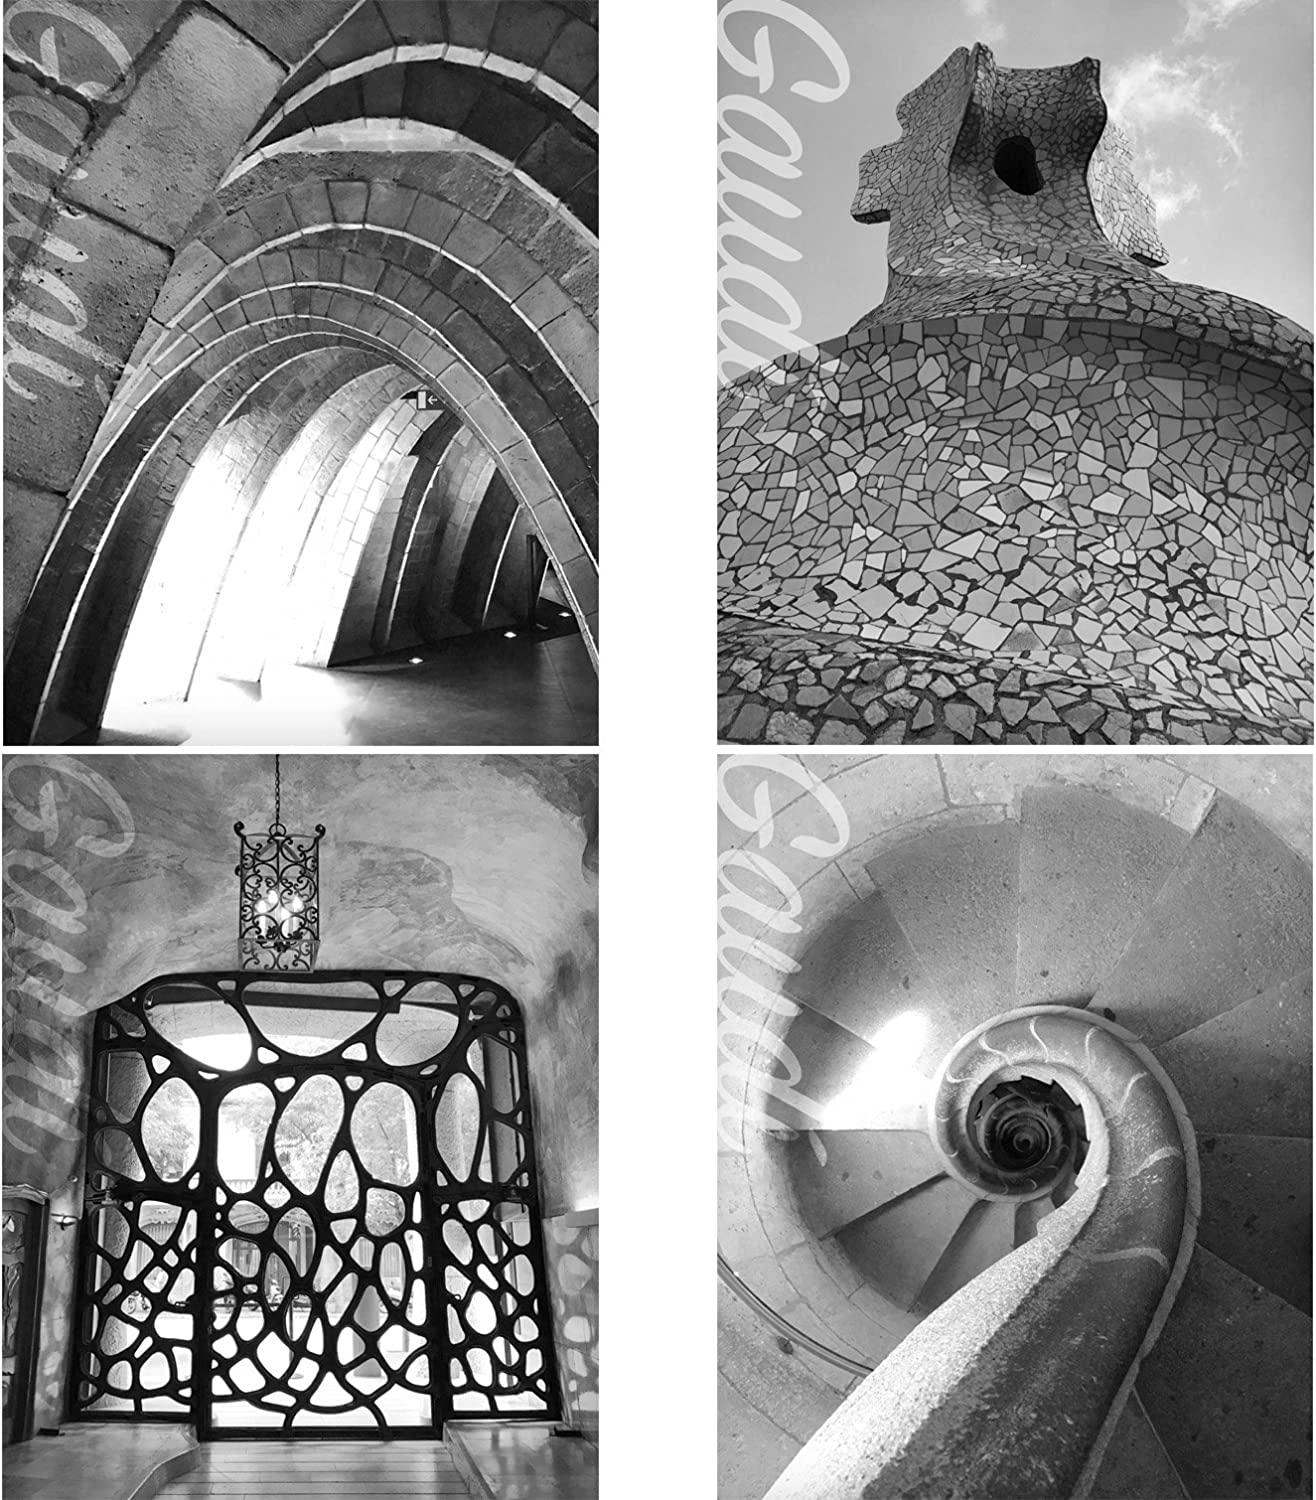 Gabby's Choice Architect Gaudi Wall Art Decor Prints - Set of Four Black and White Photos (8x10) Unframed - Great Gift for Home Decor